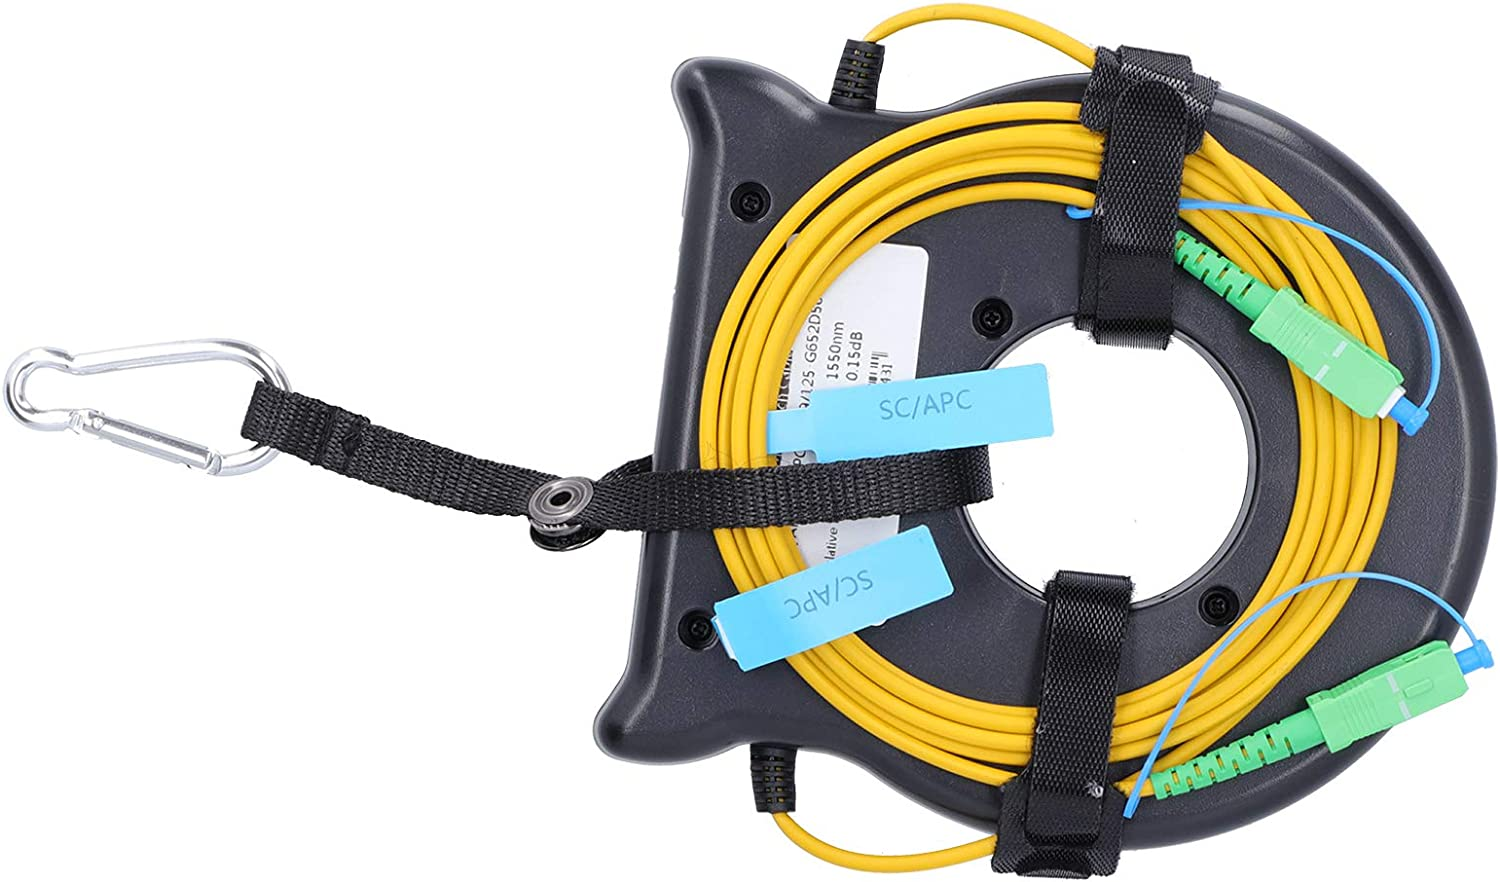 Extension Box Reliable 1640.4Ft Max 84% OFF Launches Cable Inst Stable SALENEW very popular! for